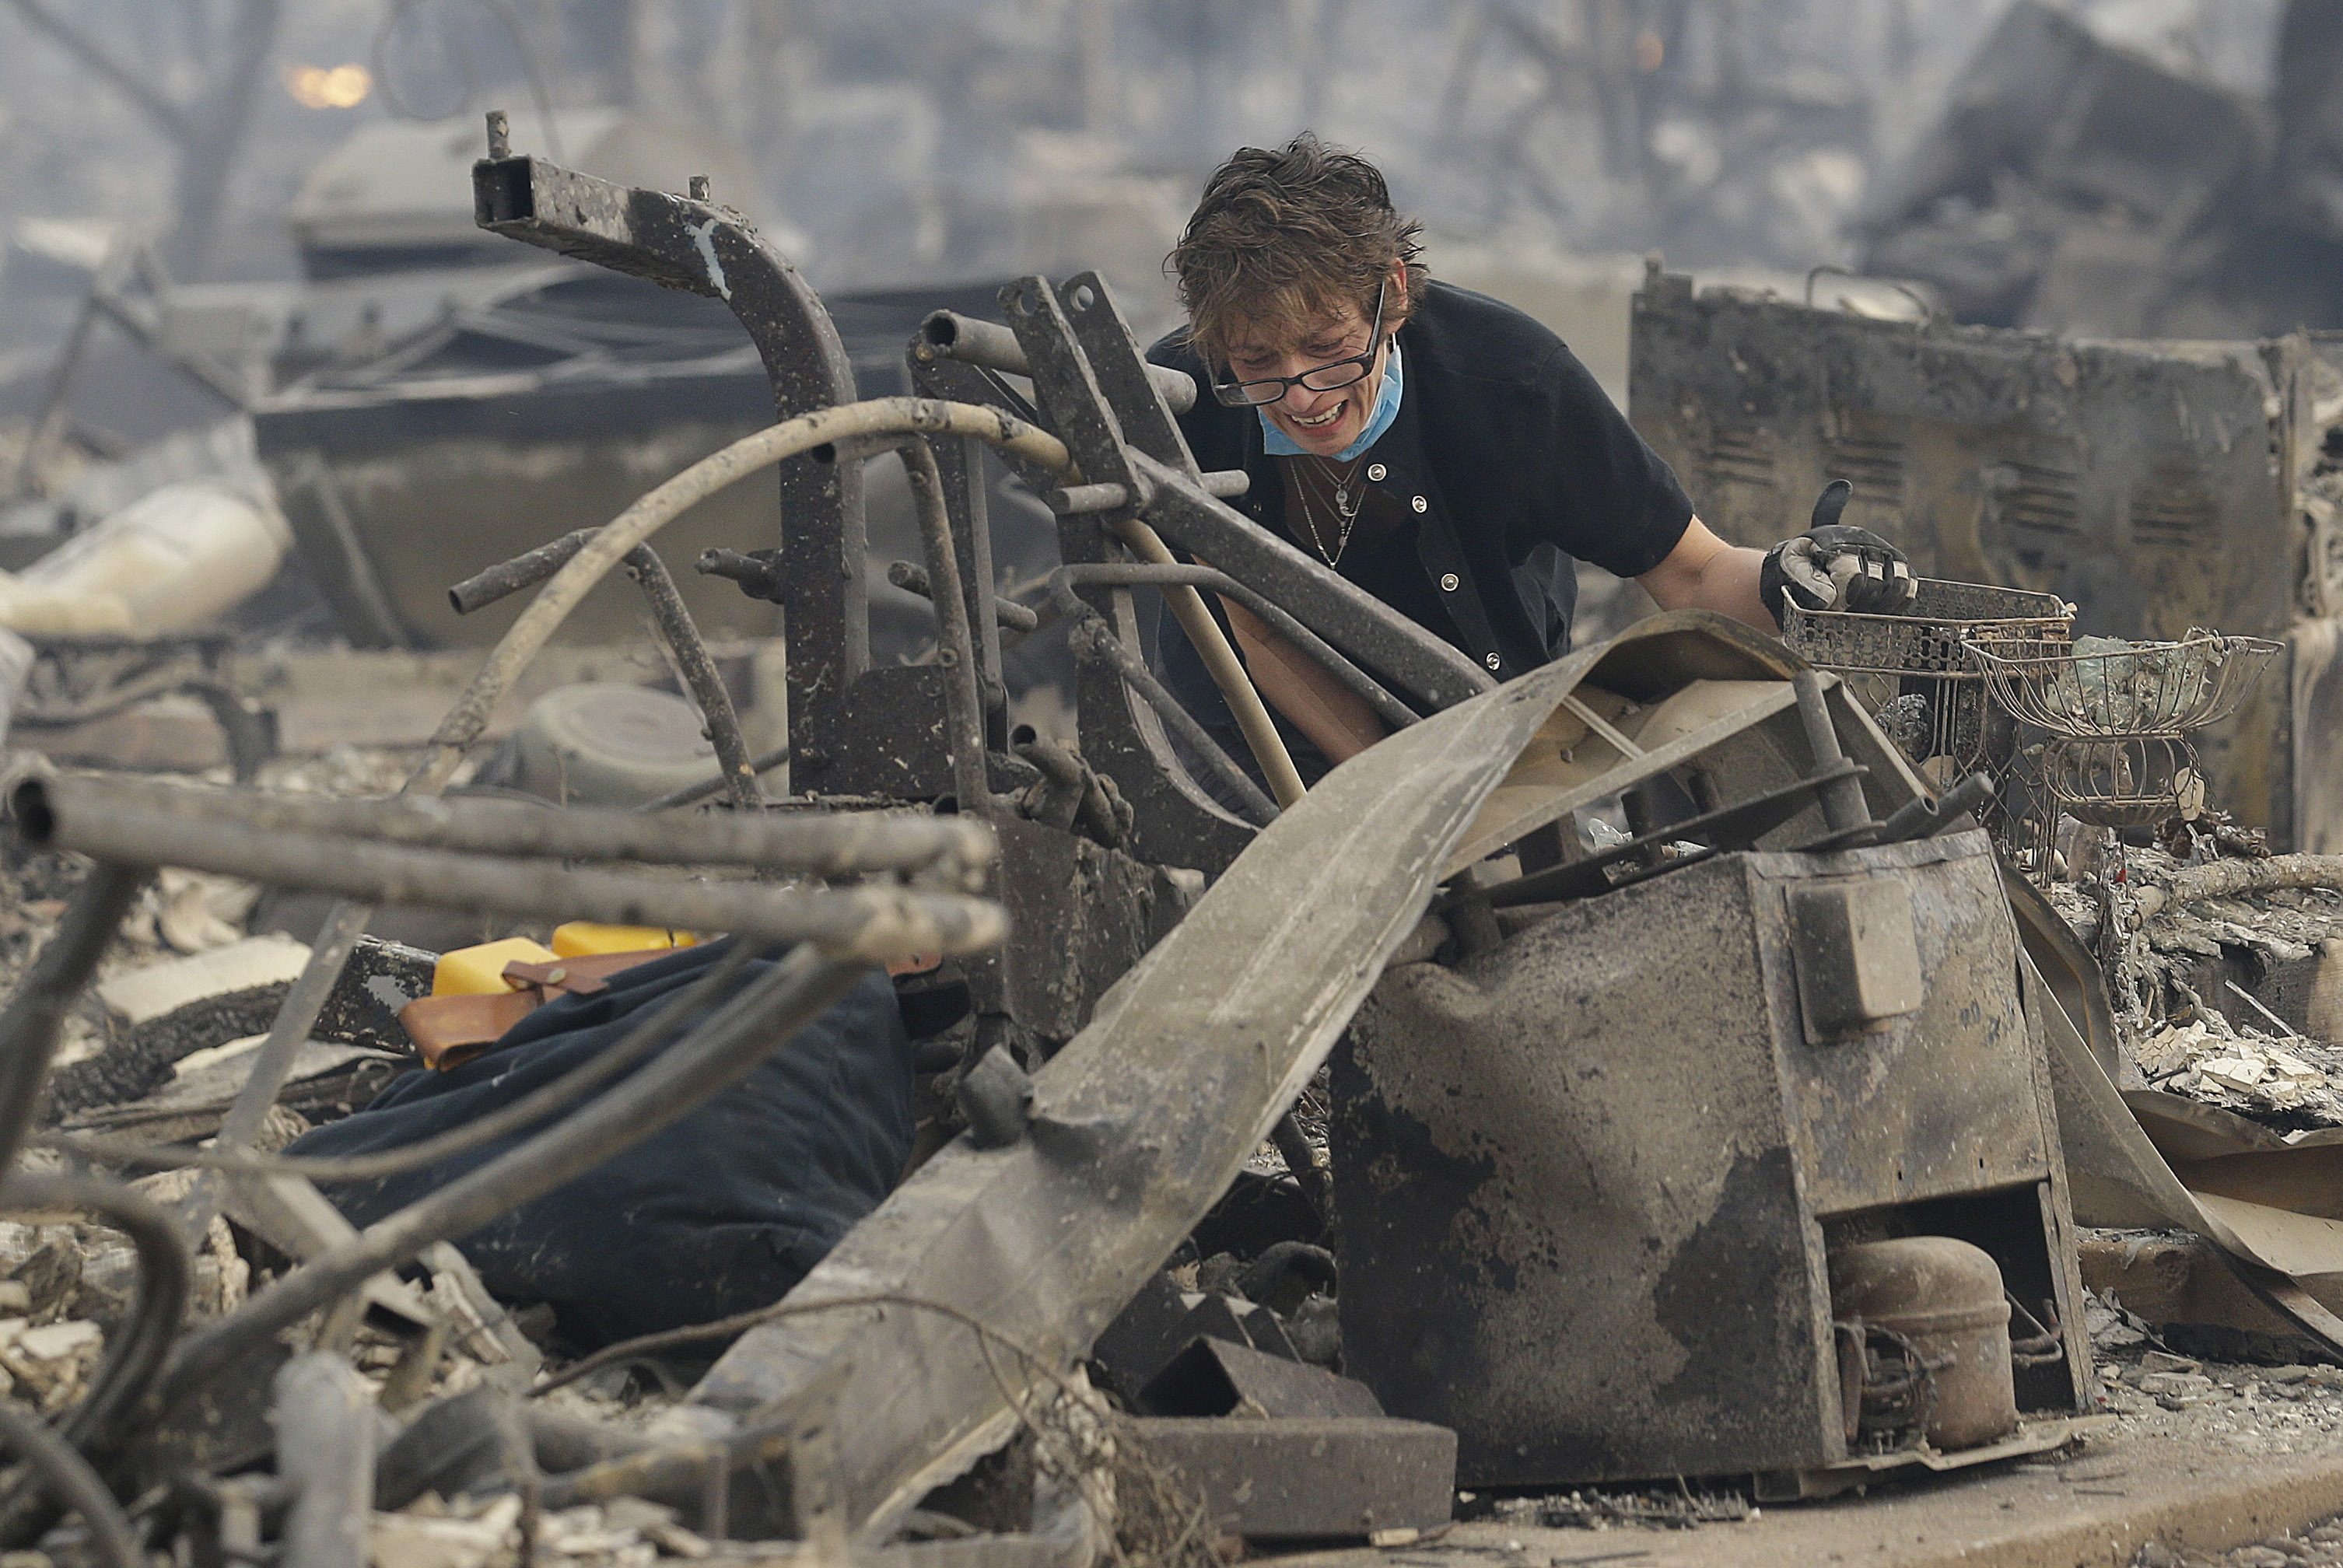 <div class='meta'><div class='origin-logo' data-origin='none'></div><span class='caption-text' data-credit='Jeff Chiu/AP Photo'>Kristine Pond reacts as she searches the remains of her family's home destroyed by fires in Santa Rosa, Calif., Monday, Oct. 9, 2017.</span></div>